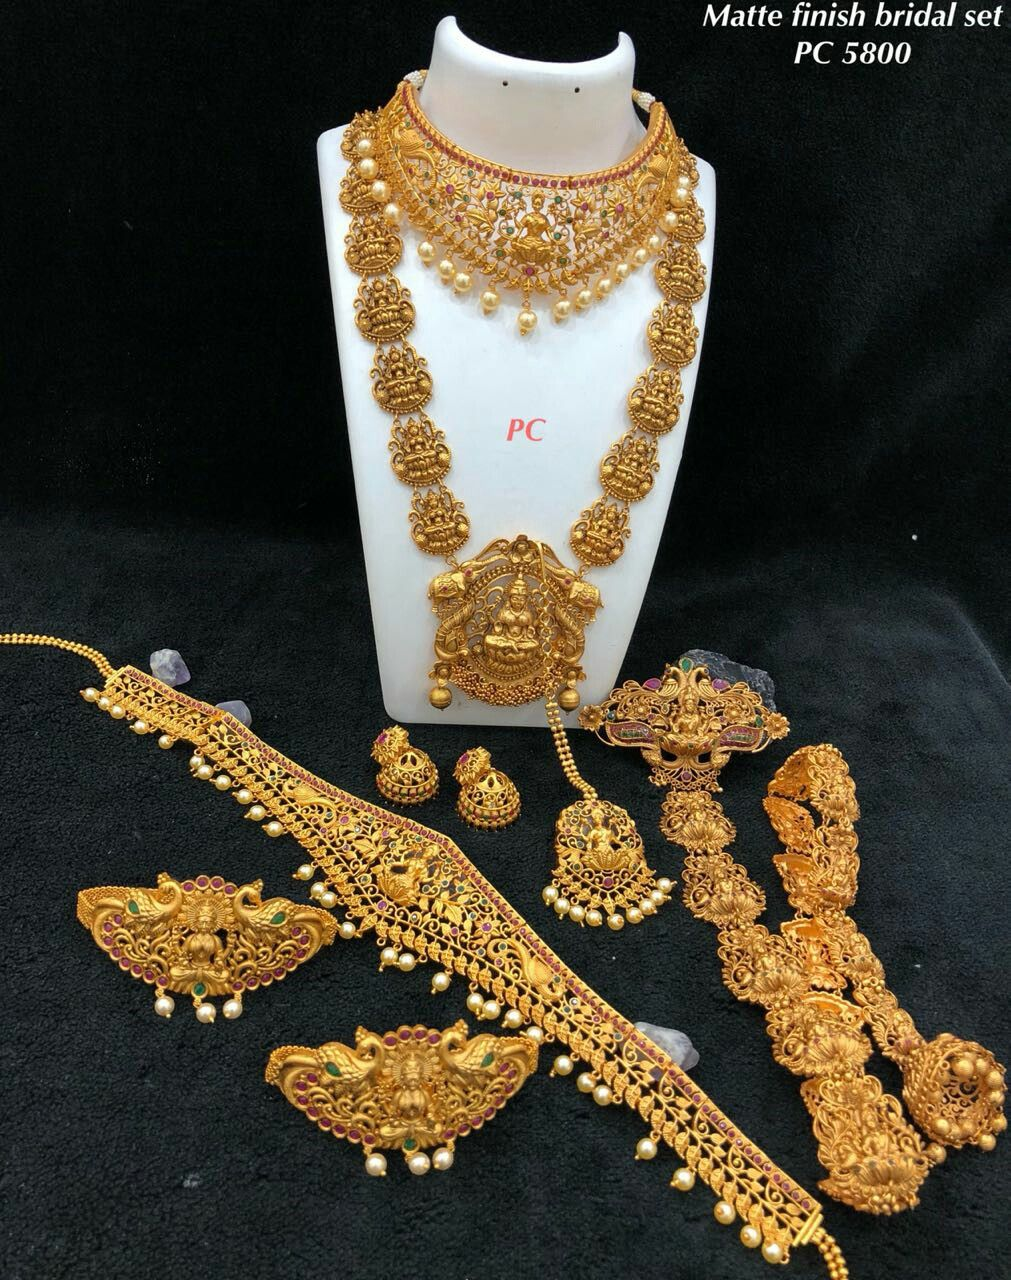 Pin By Southindian Jewellery On South Indian Bridal Sets Indian Brides Jewelry Bride Jewellery Baby Jewelry Gold